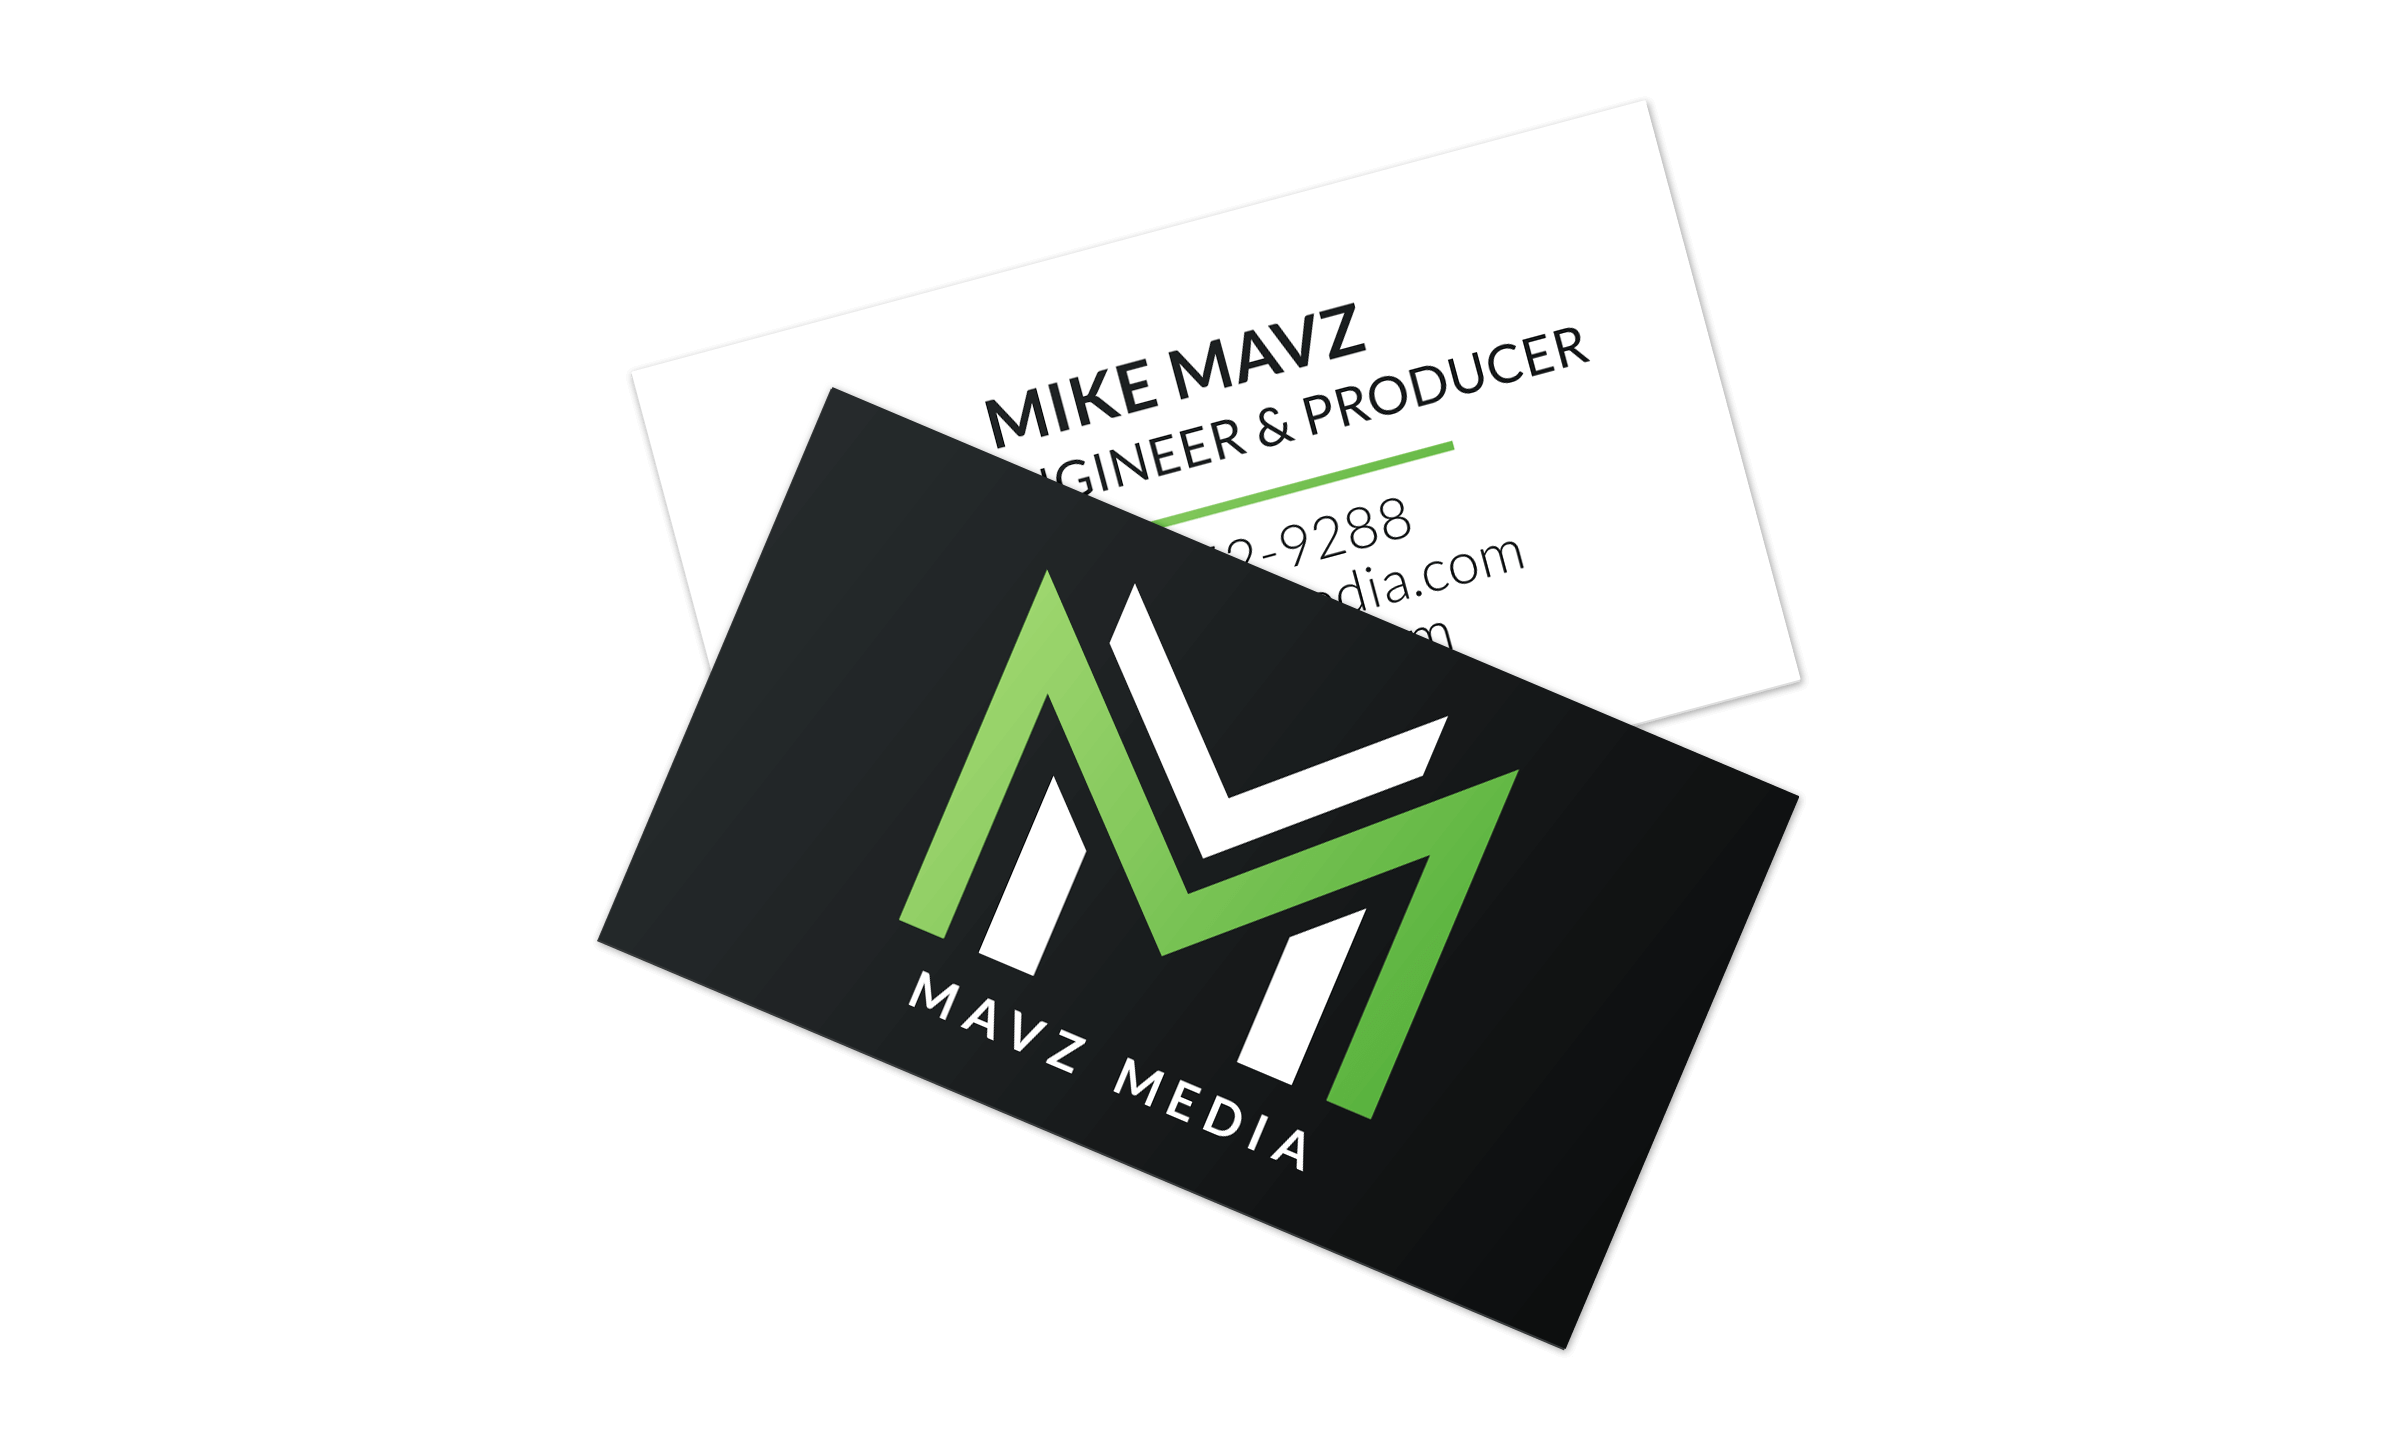 Mavz Media Business Cards